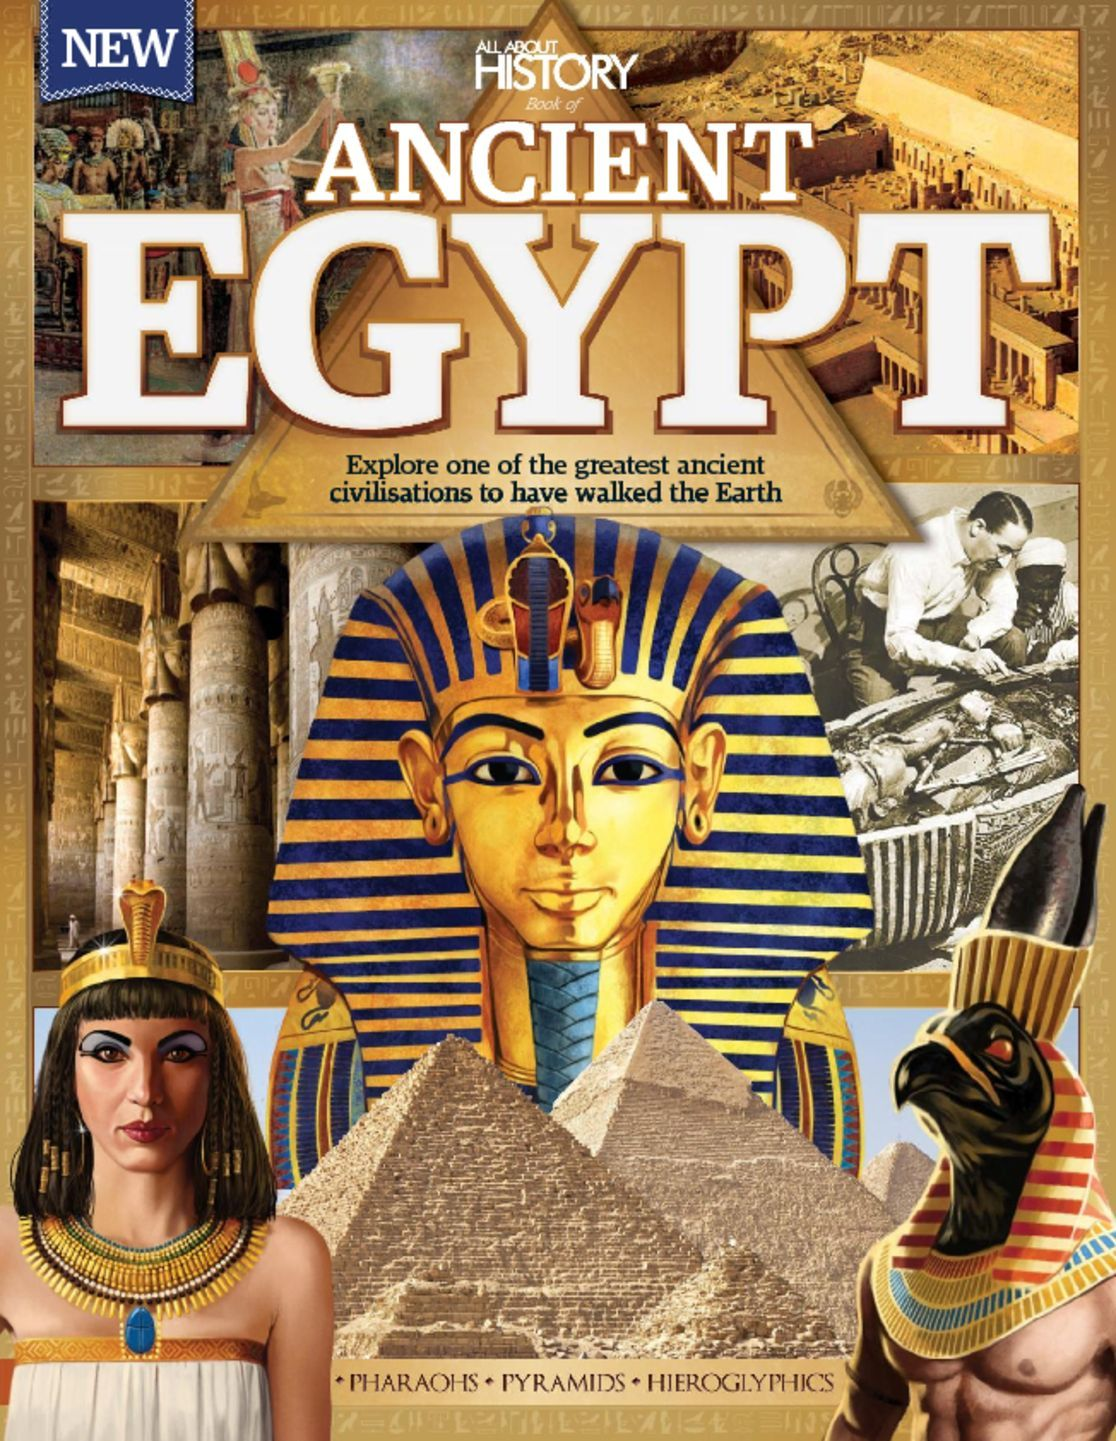 All About History Book Of Ancient Egypt Digital